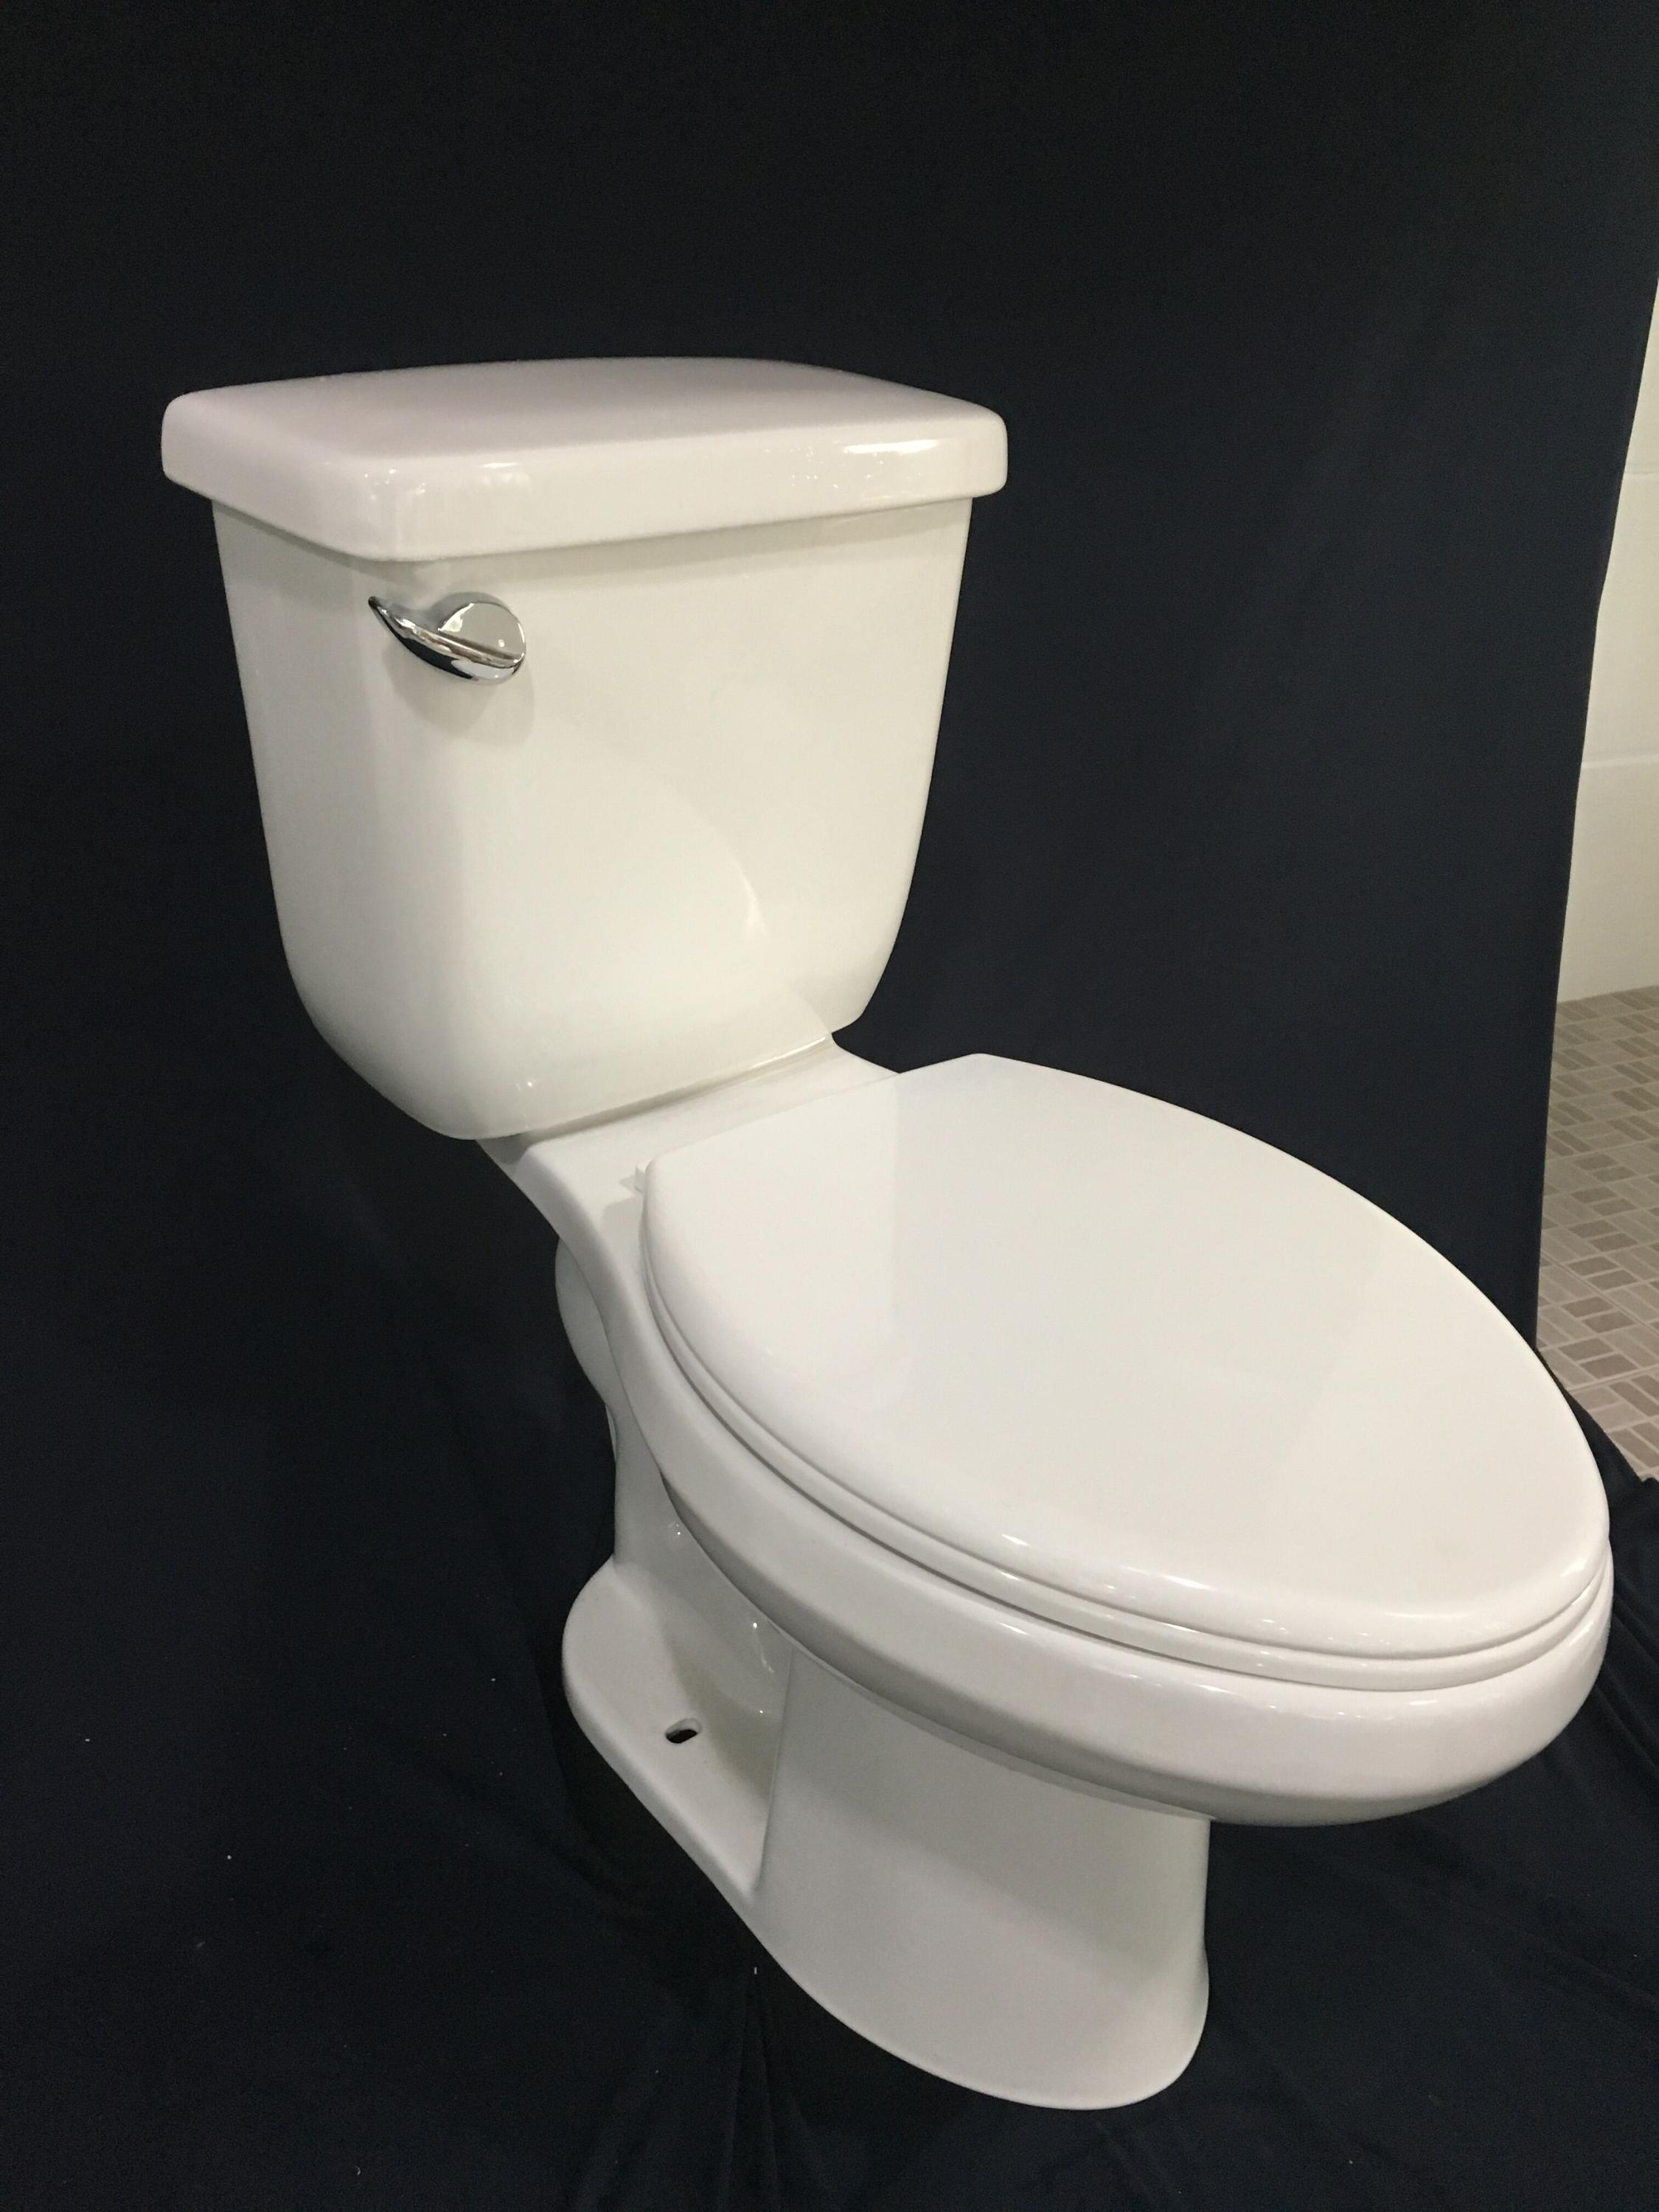 American Standard Sidel Flush Elongated Two Piece Toilet